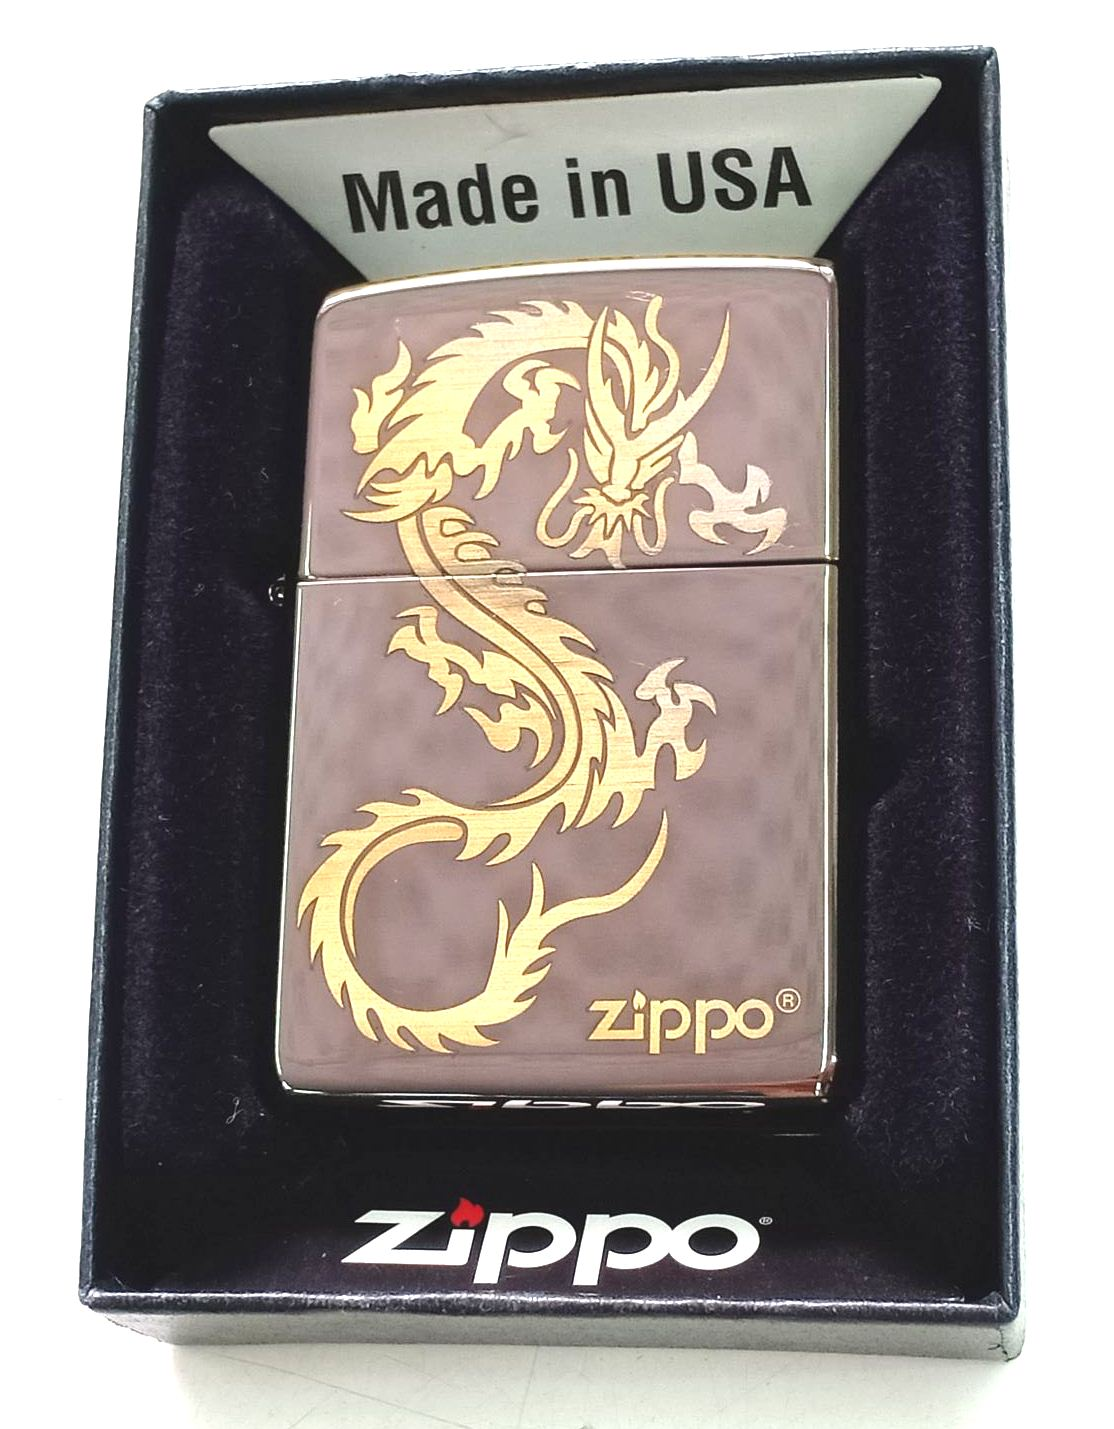 Zippo black ice khac laser hinh rong Z663